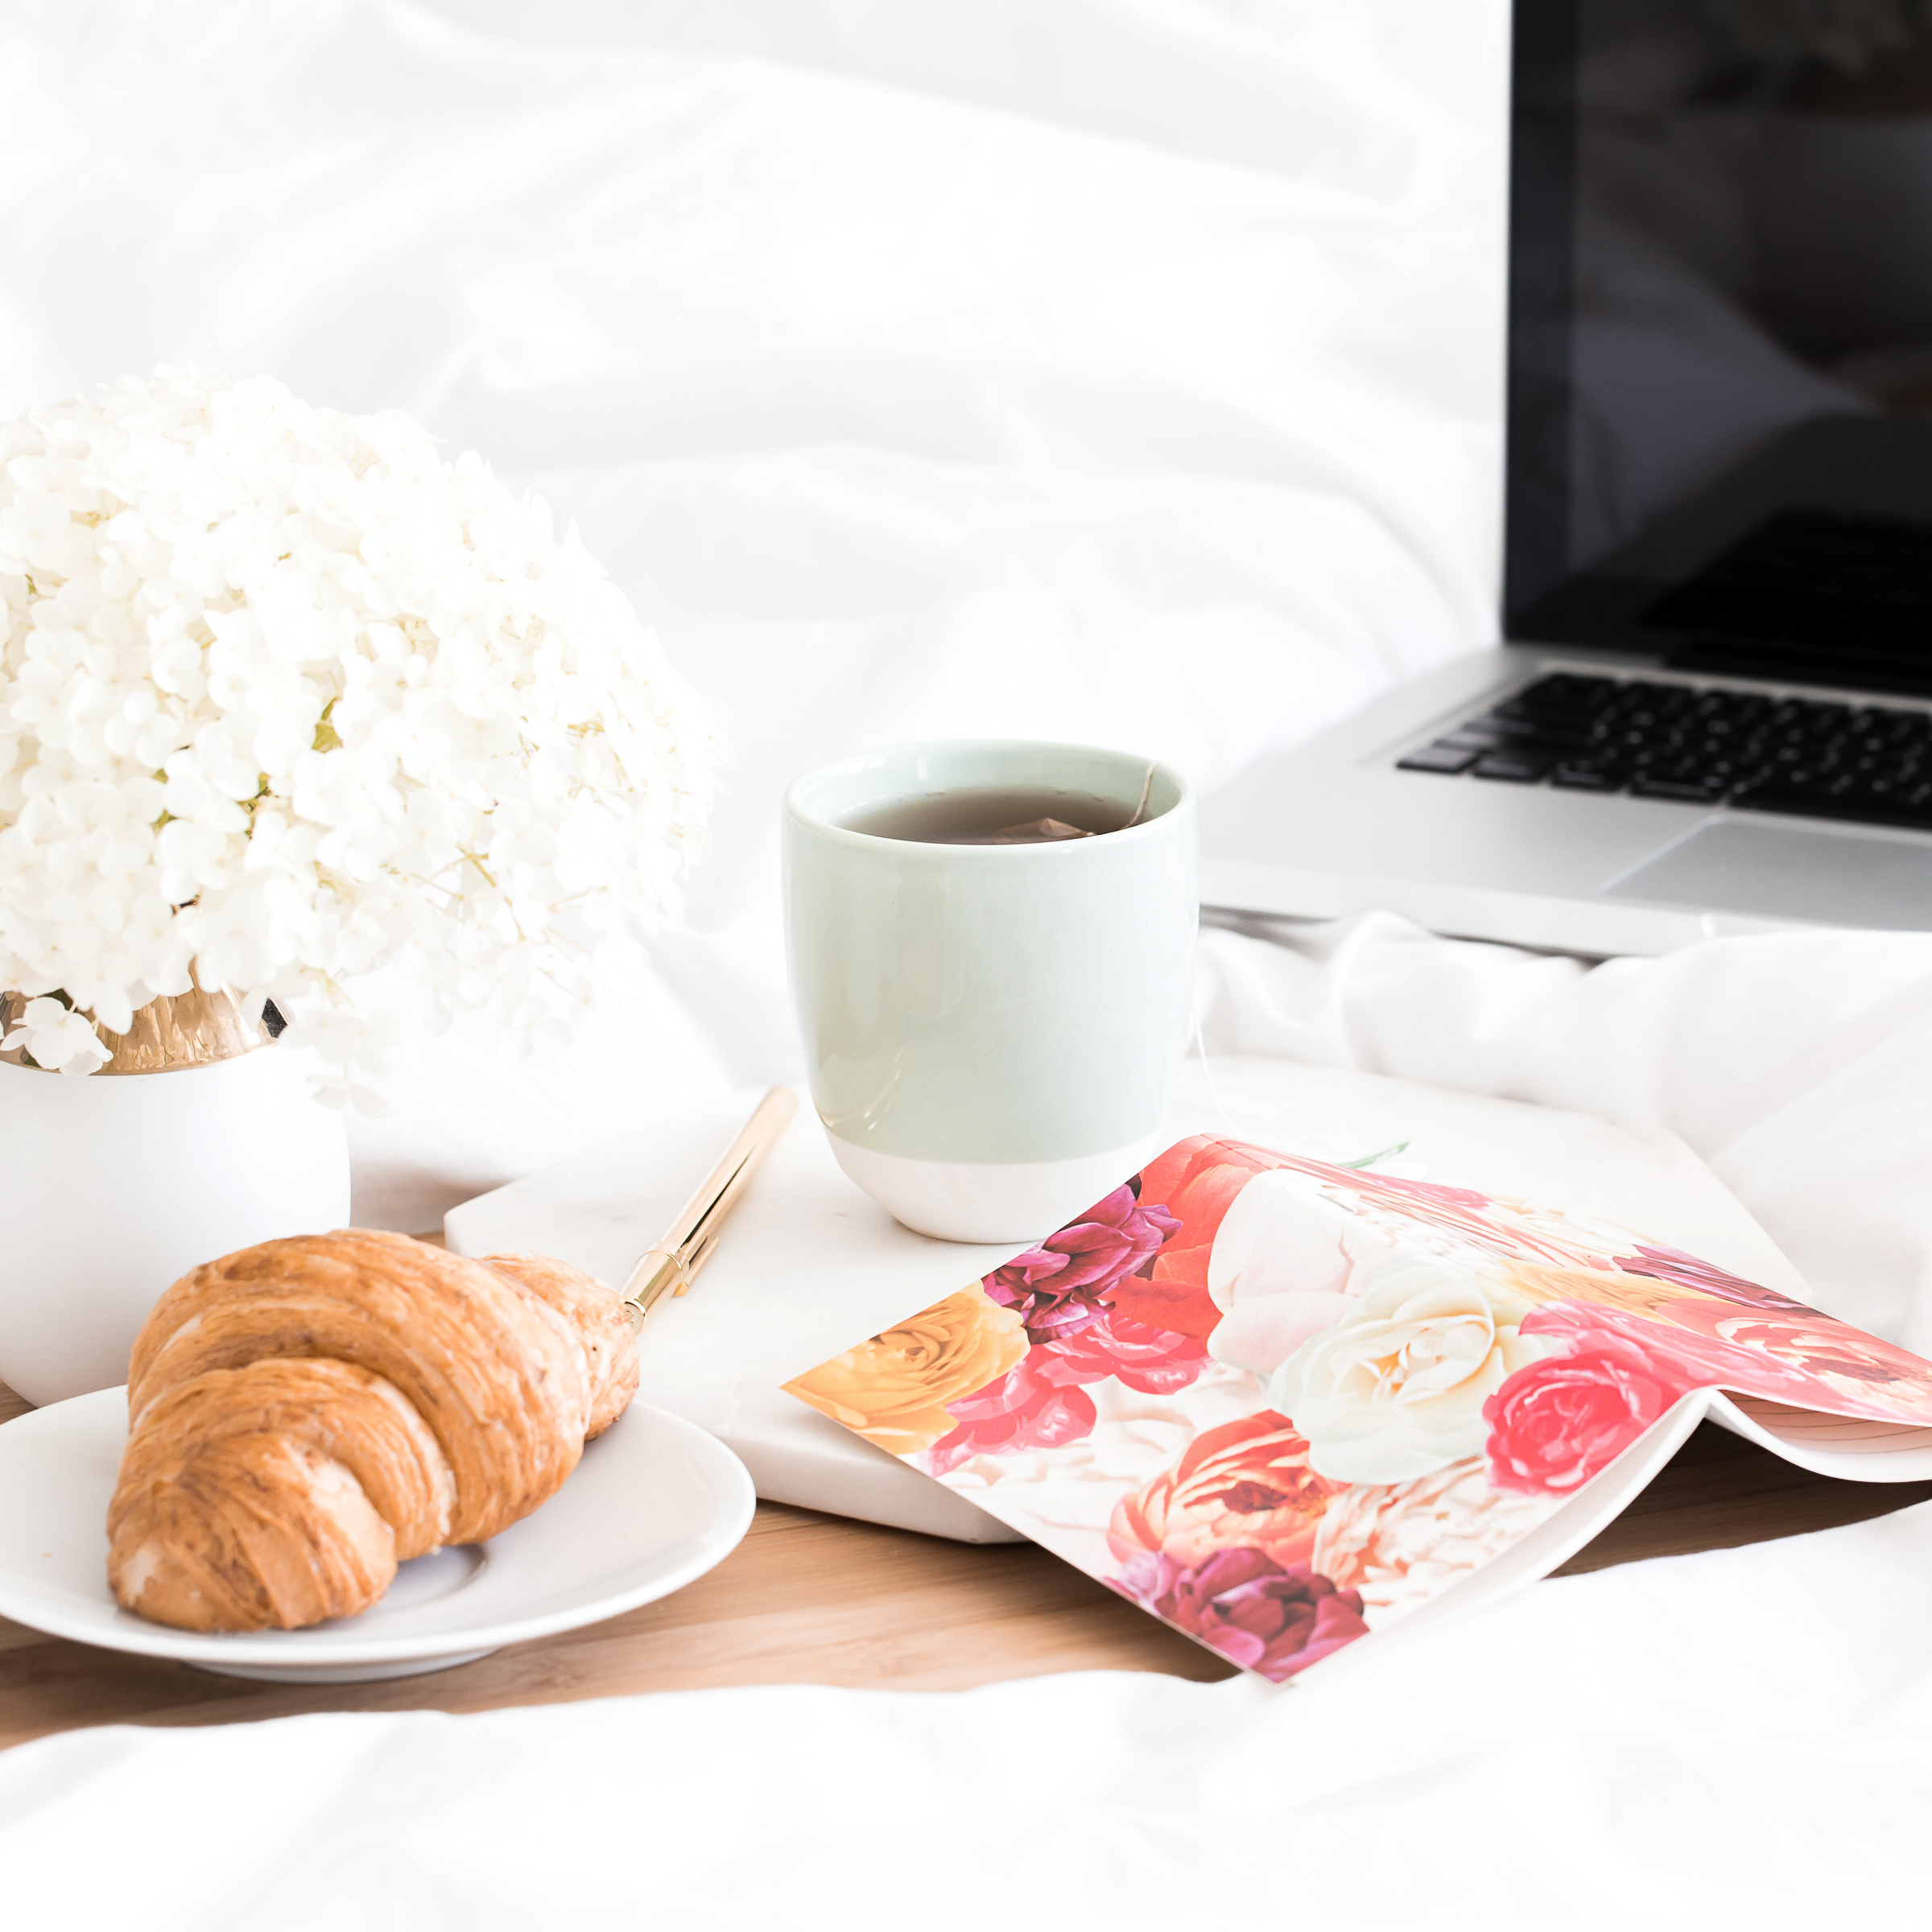 haute-chocolate-styled-stock-photography-breakfast-in-bed-10-final-square